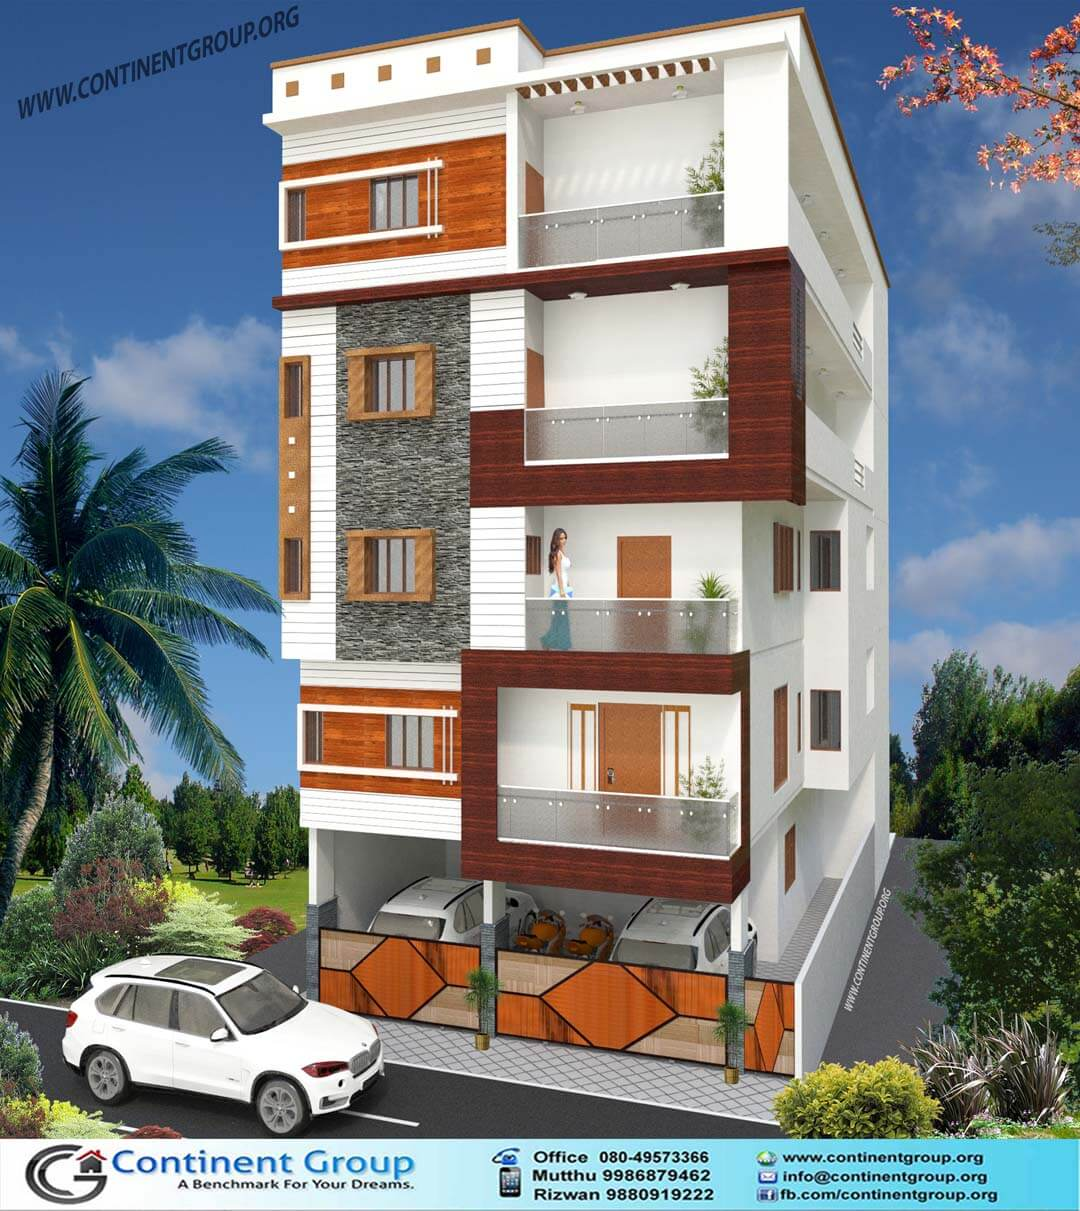 D Front Elevation Of Building : Ground floor elevation building